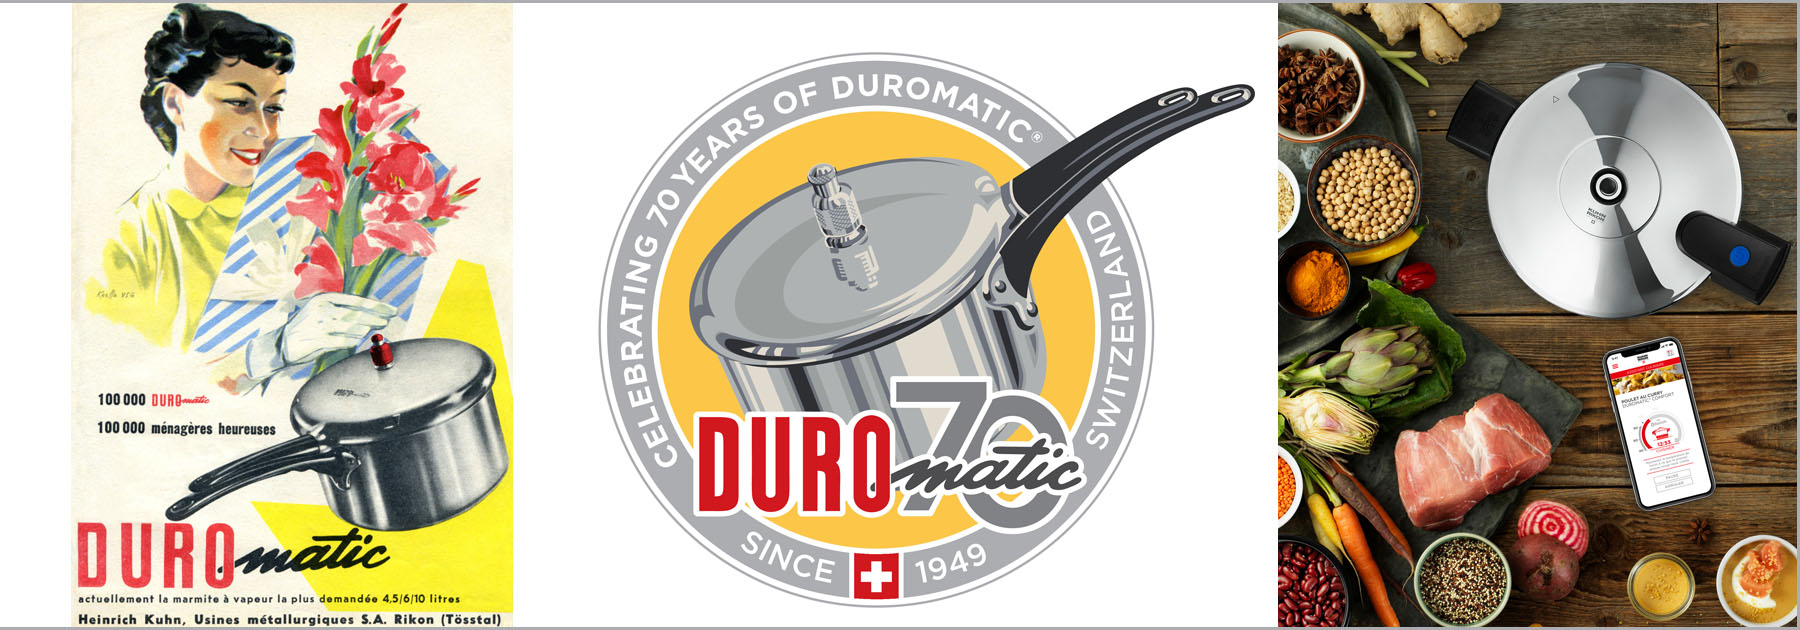 Duromatic, pressure, cooker, 70th, anniversary